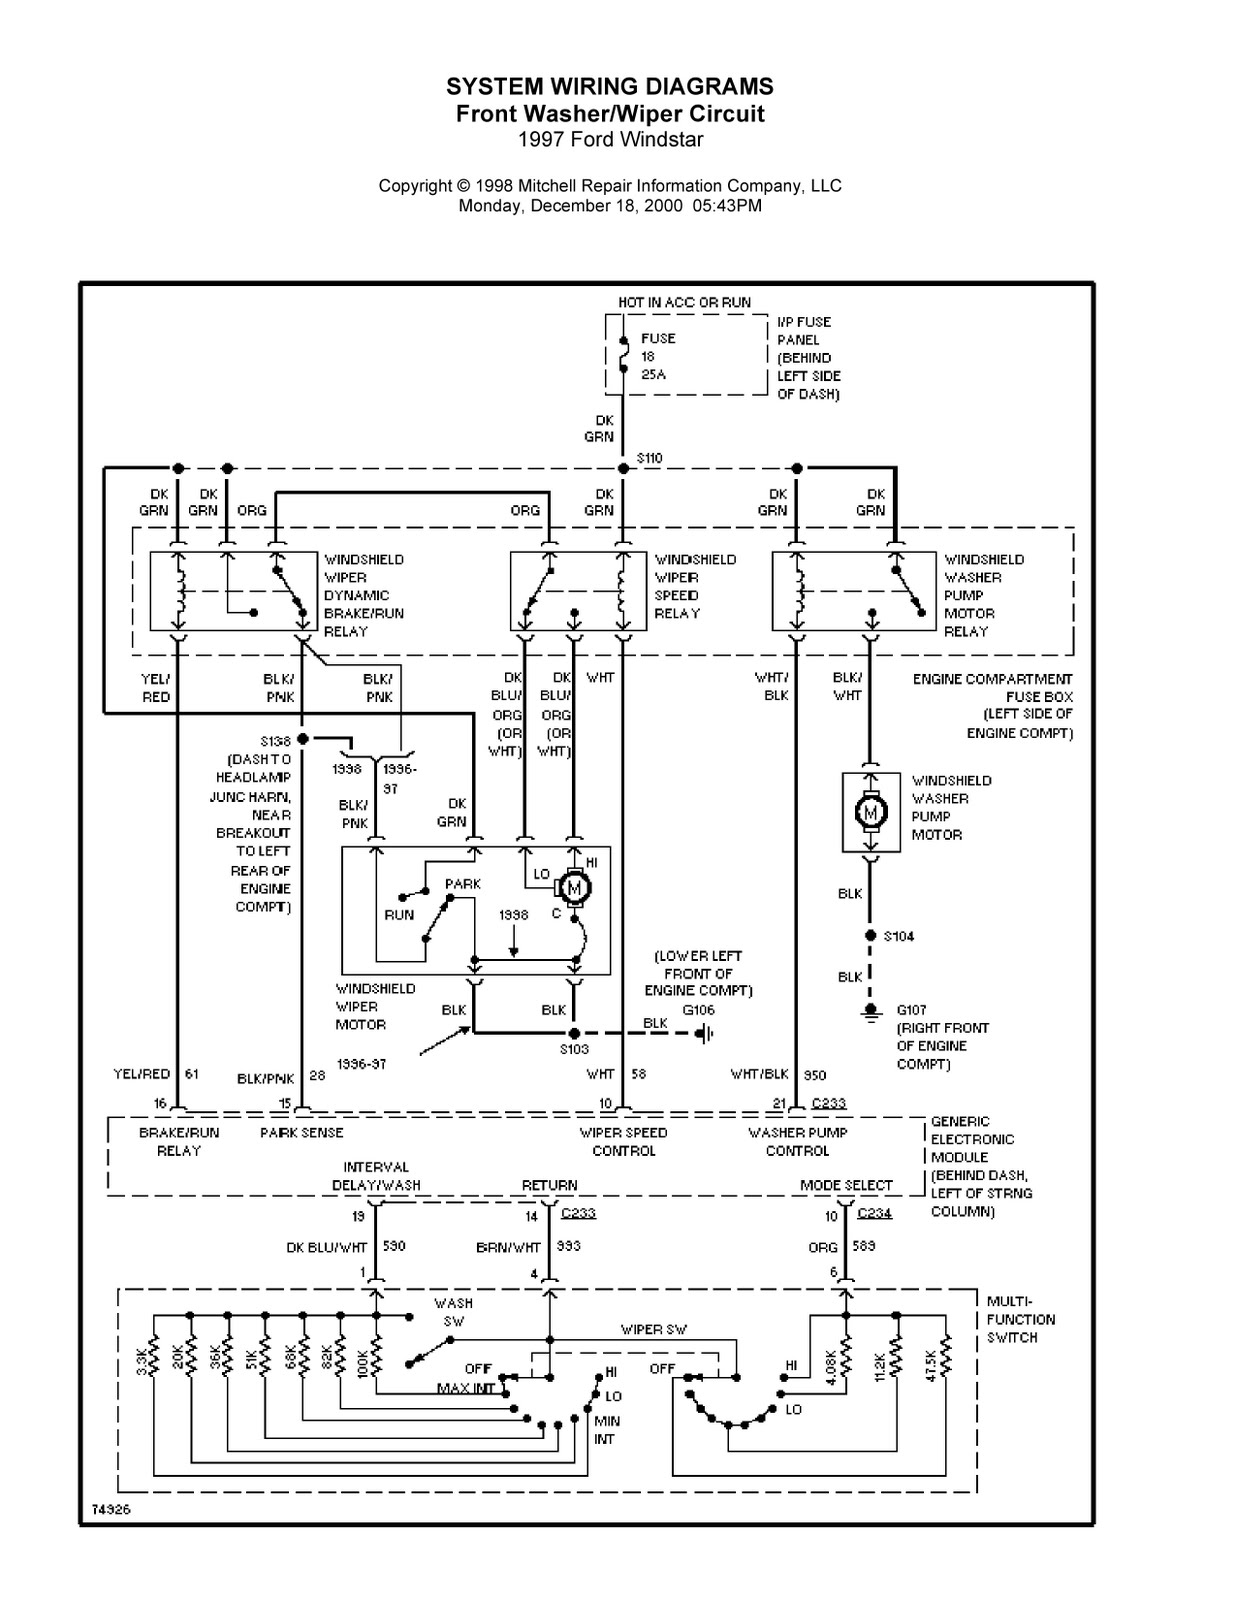 diagram 2001 ford windstar headlight wiring diagram full version hd quality wiring diagram canadadiagram pistoiamobilita it 2001 ford windstar headlight wiring